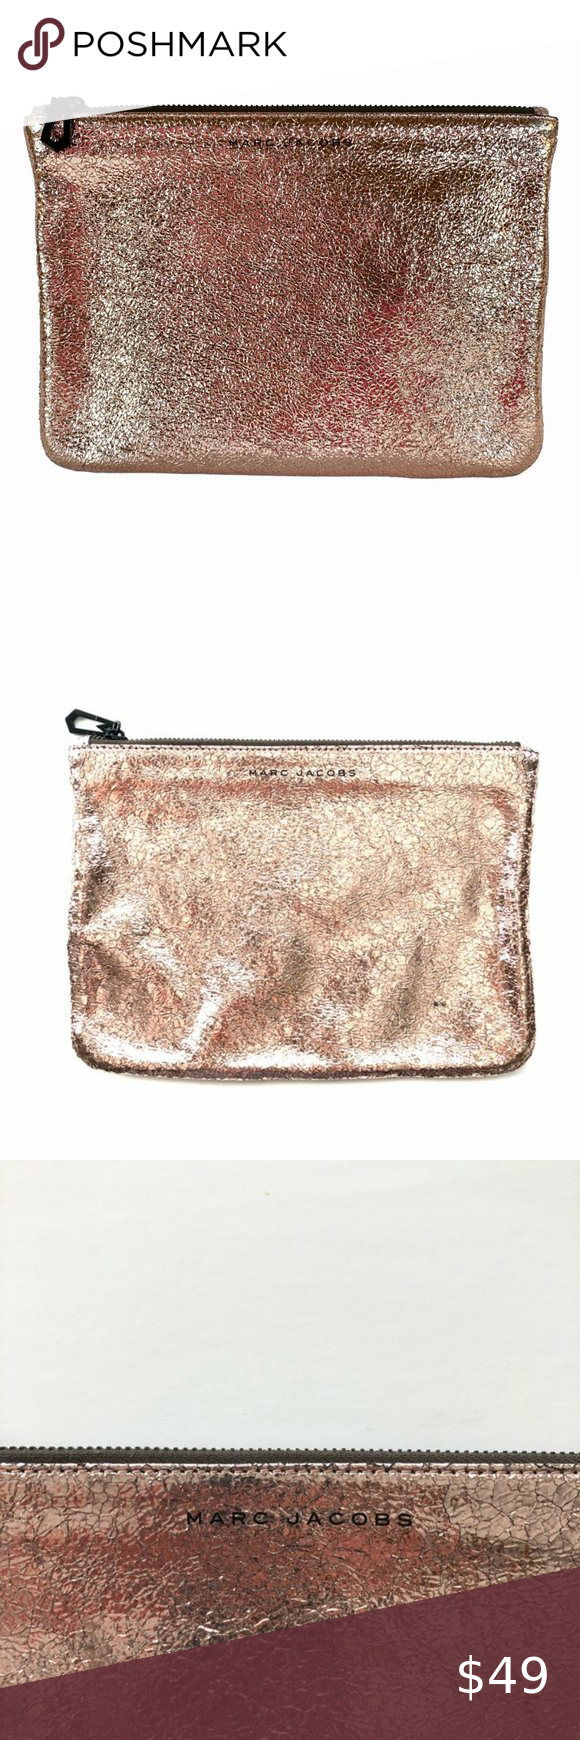 Rose Marc Jacobs Clutch Neiman Marcus For Target Marc Jacobs Clutch Marc Jacobs Logo Marc Jacobs Wallet